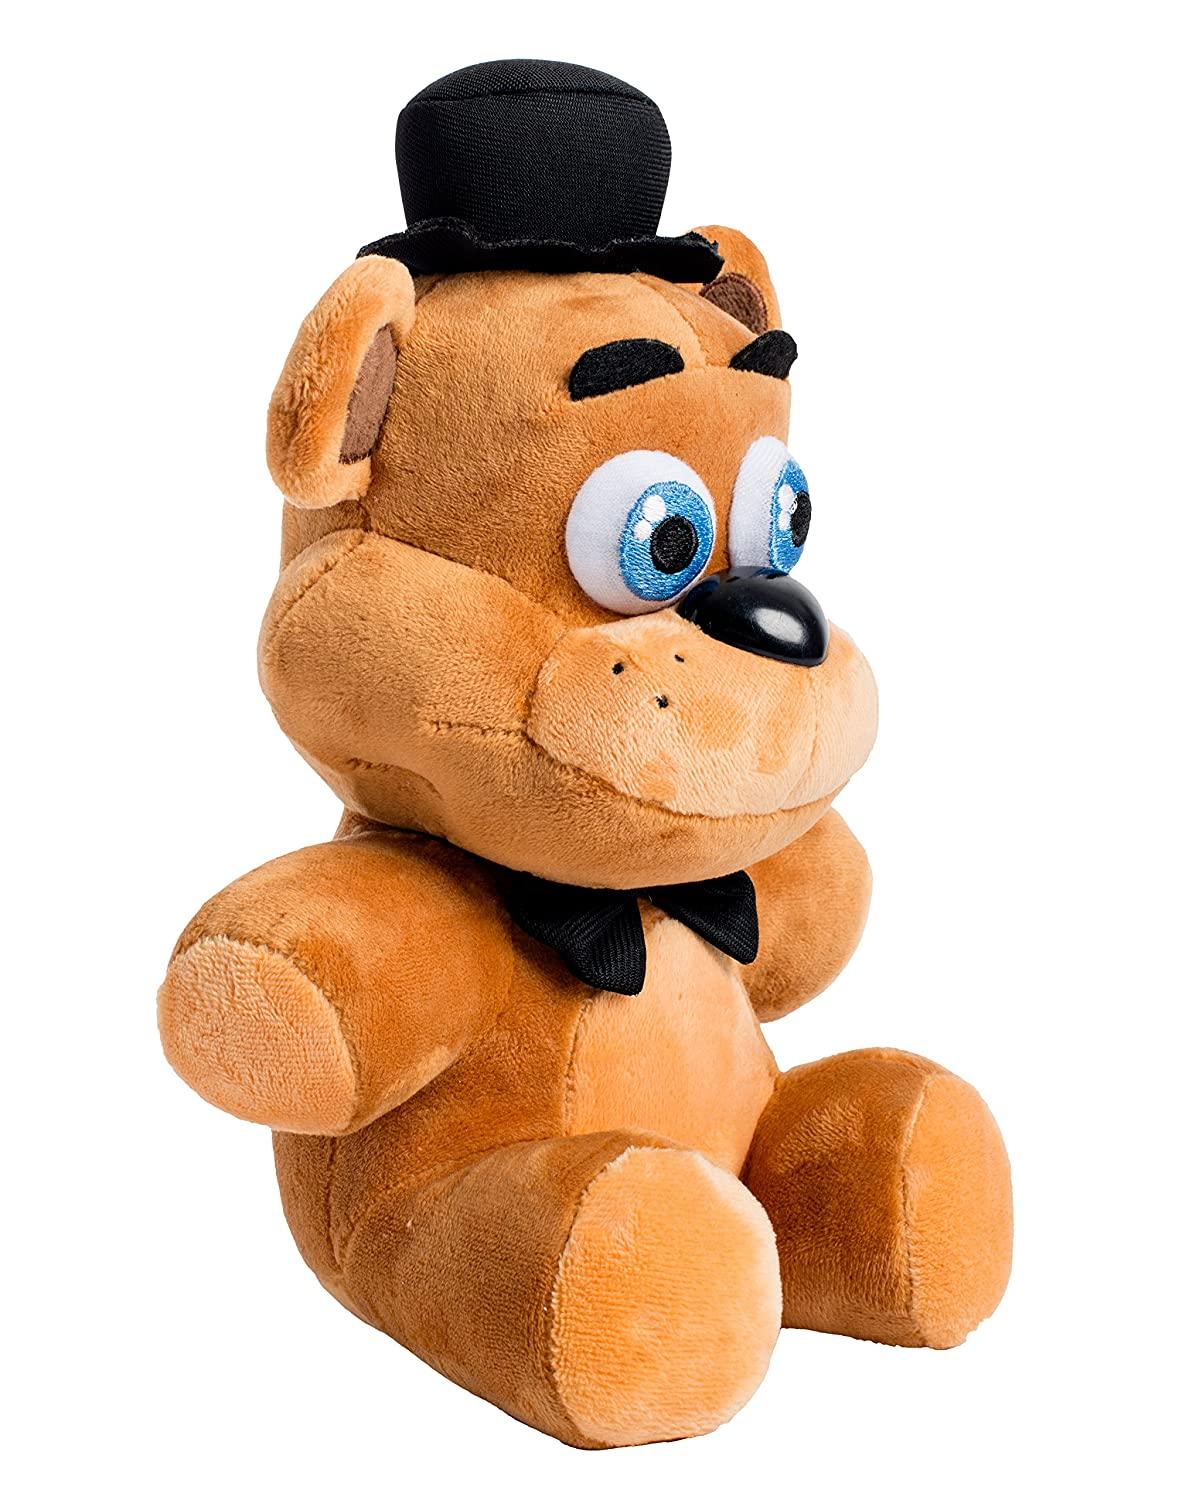 Amazon.com: Sanshee Official Five Nights at Freddys 10